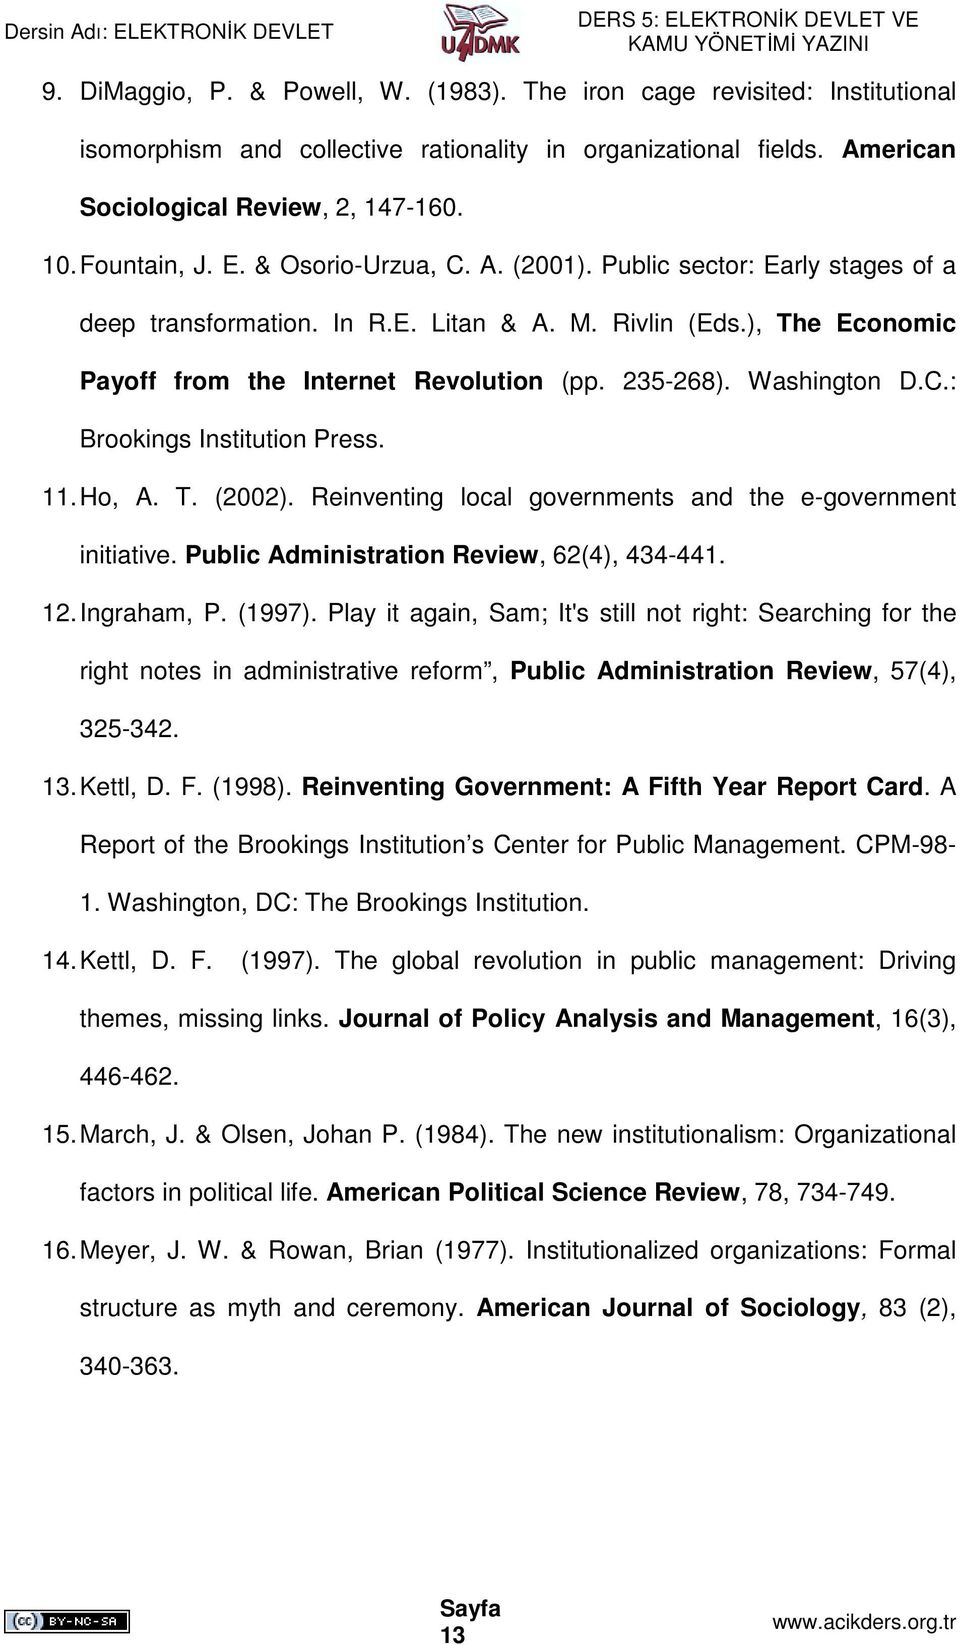 Washington D.C.: Brookings Institution Press. 11. Ho, A. T. (2002). Reinventing local governments and the e-government initiative. Public Administration Review, 62(4), 434-441. 12. Ingraham, P.